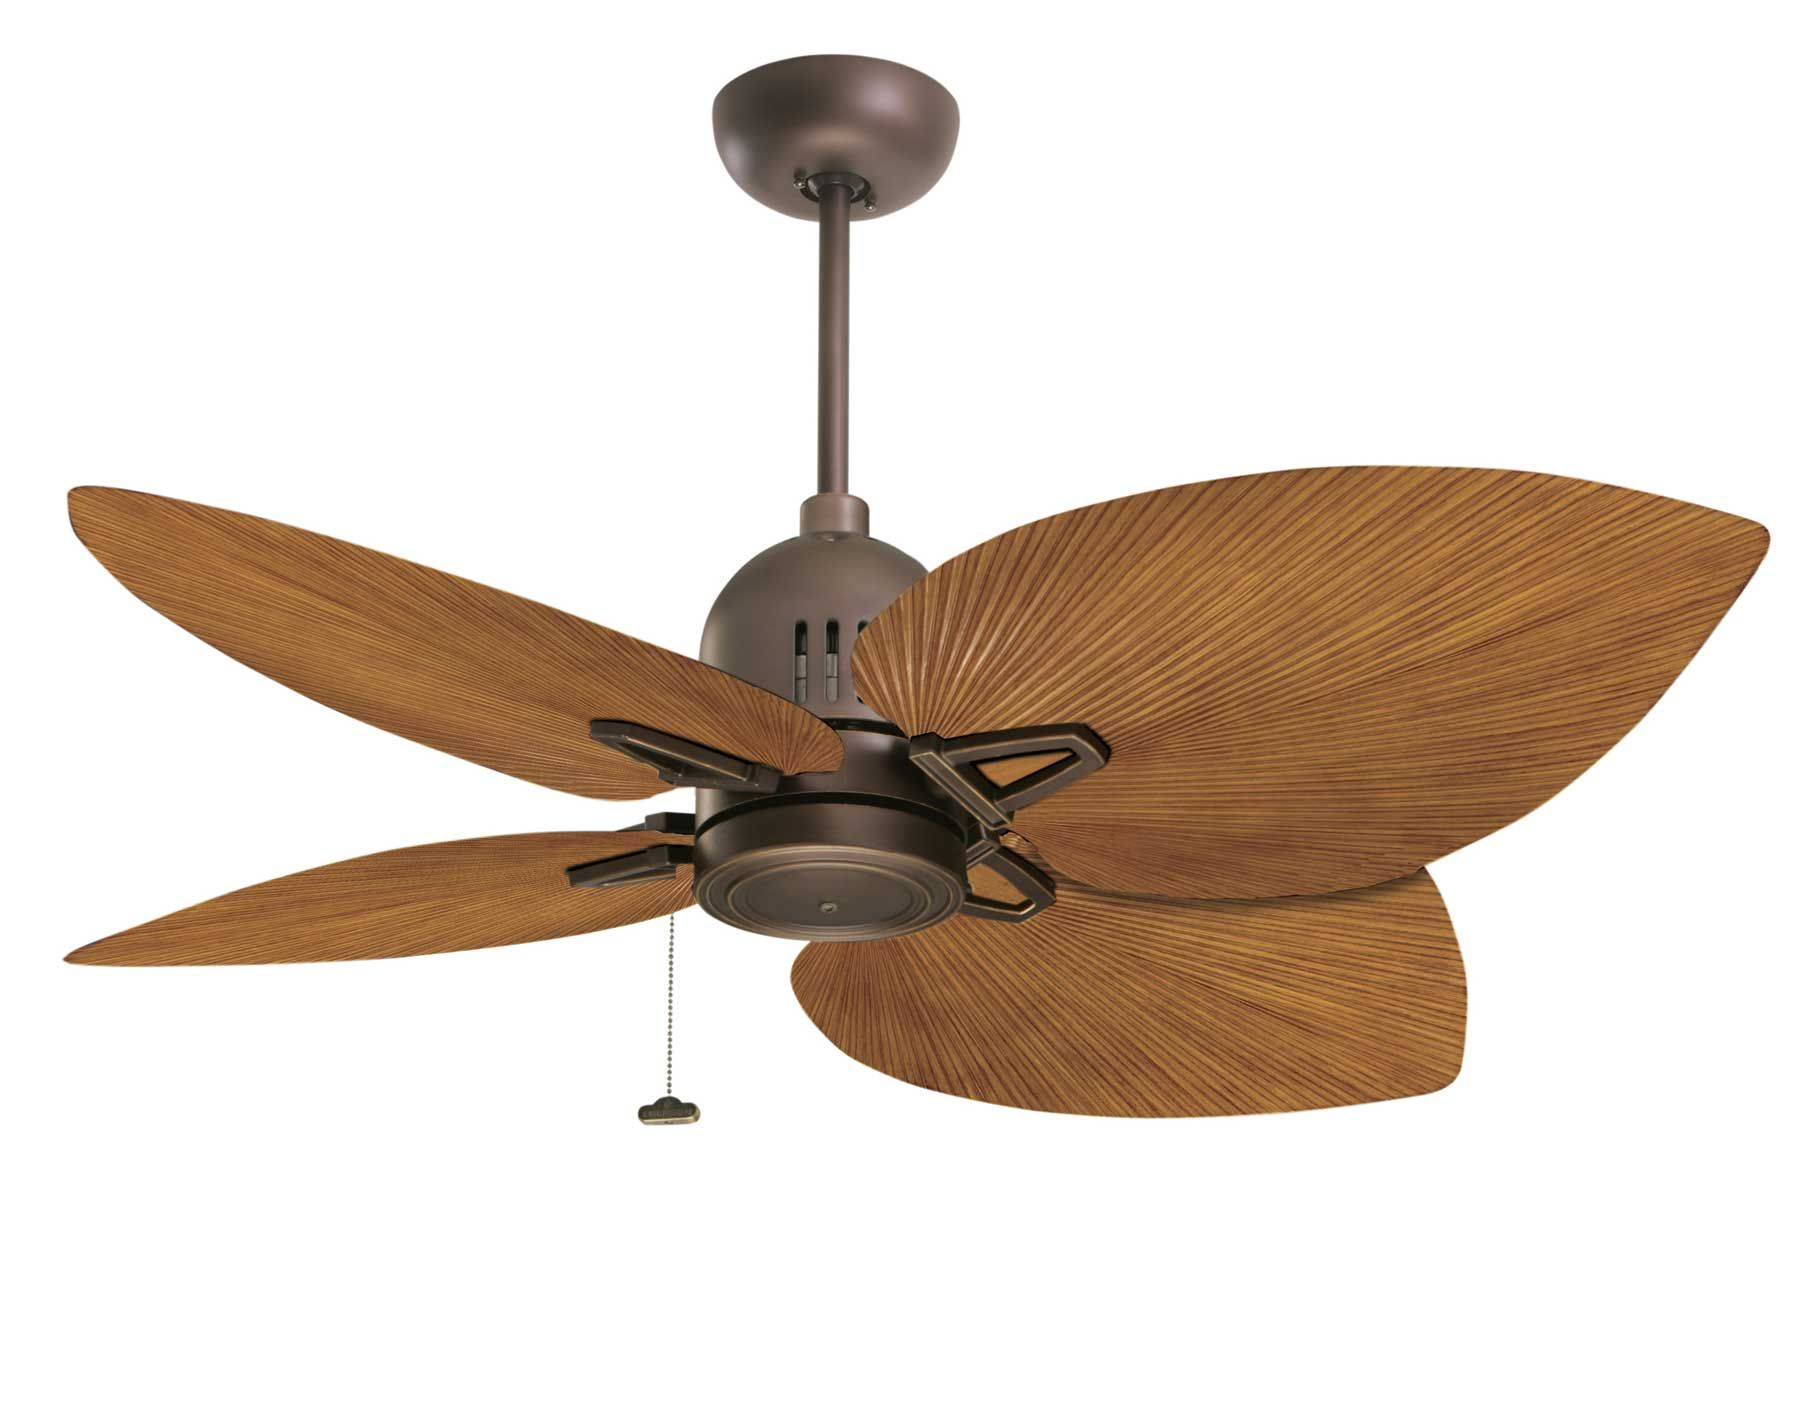 Bigleaf ceiling fans twin ceiling fans home depot best home oil rubbed bronze nedmac outdoor ceiling fan w pecan palm leaf blades aloadofball Choice Image